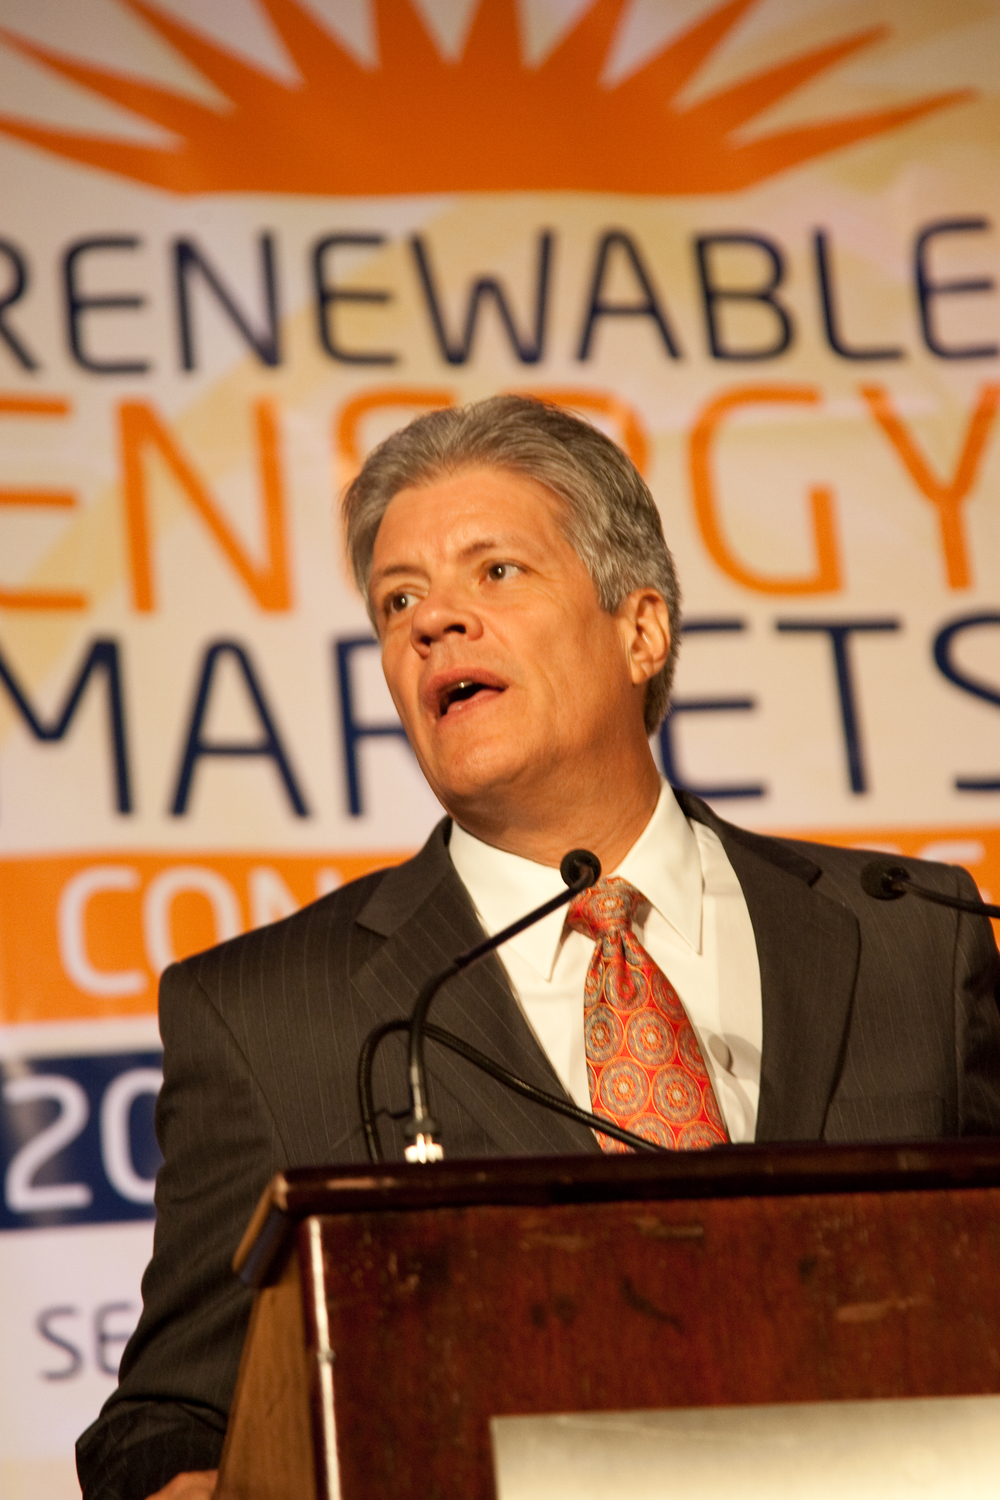 2090914renewableenergy20324.jpg